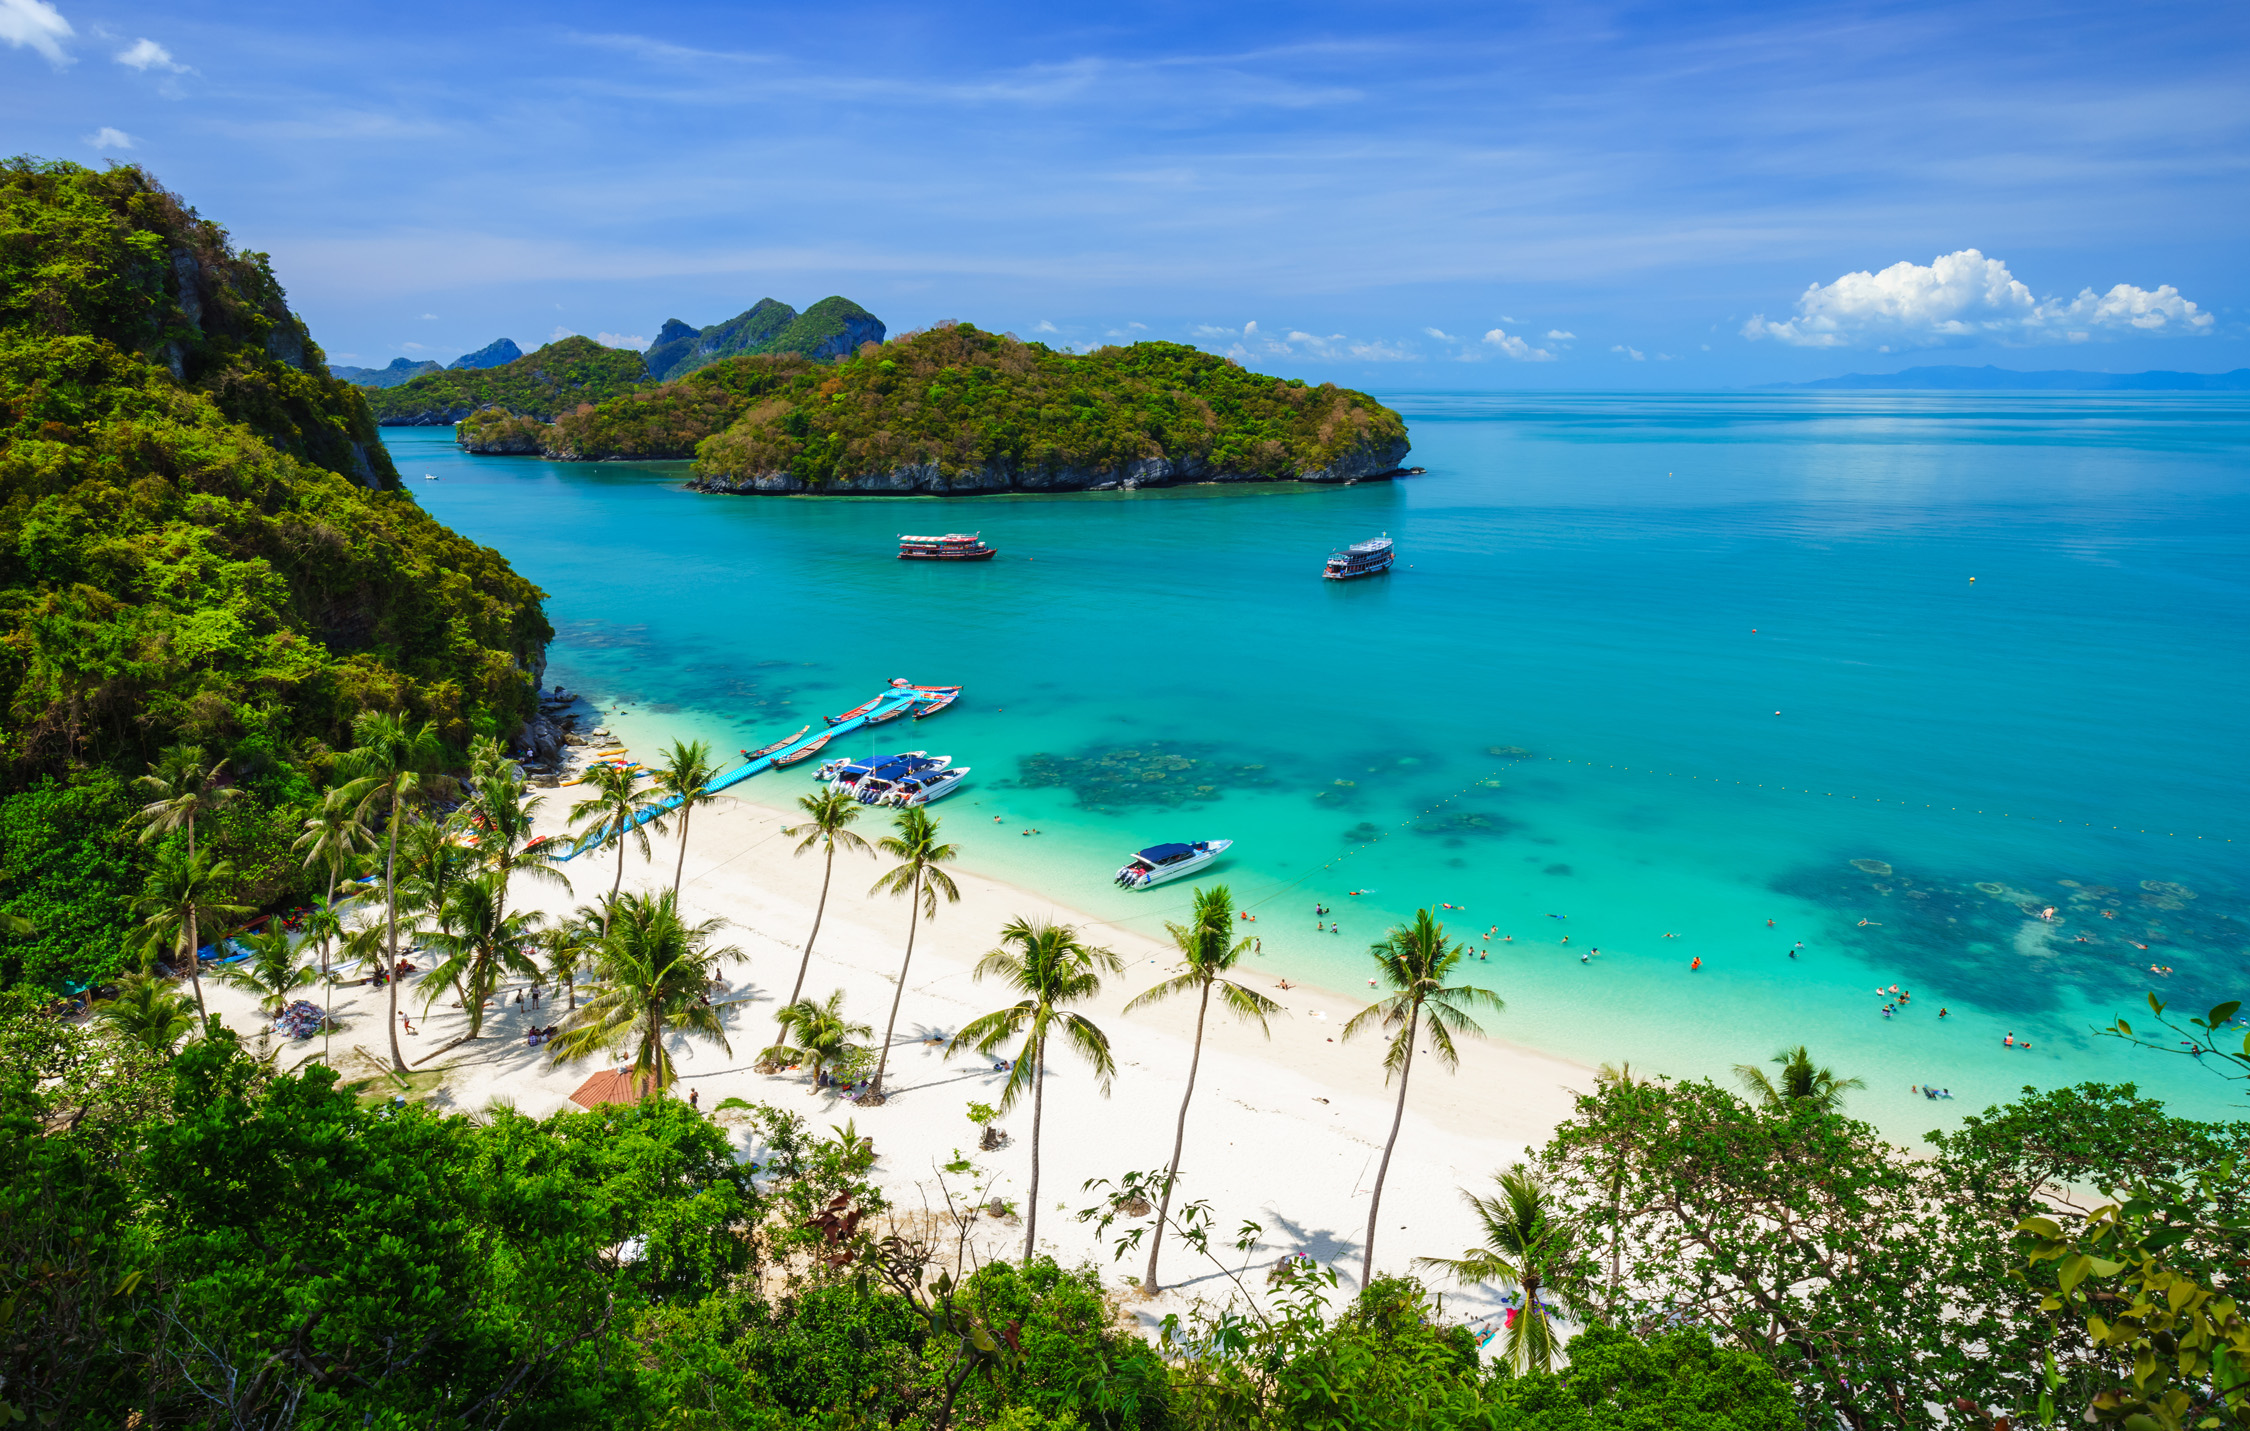 Thailand: 19 days on Koh Samui with your own beach ...